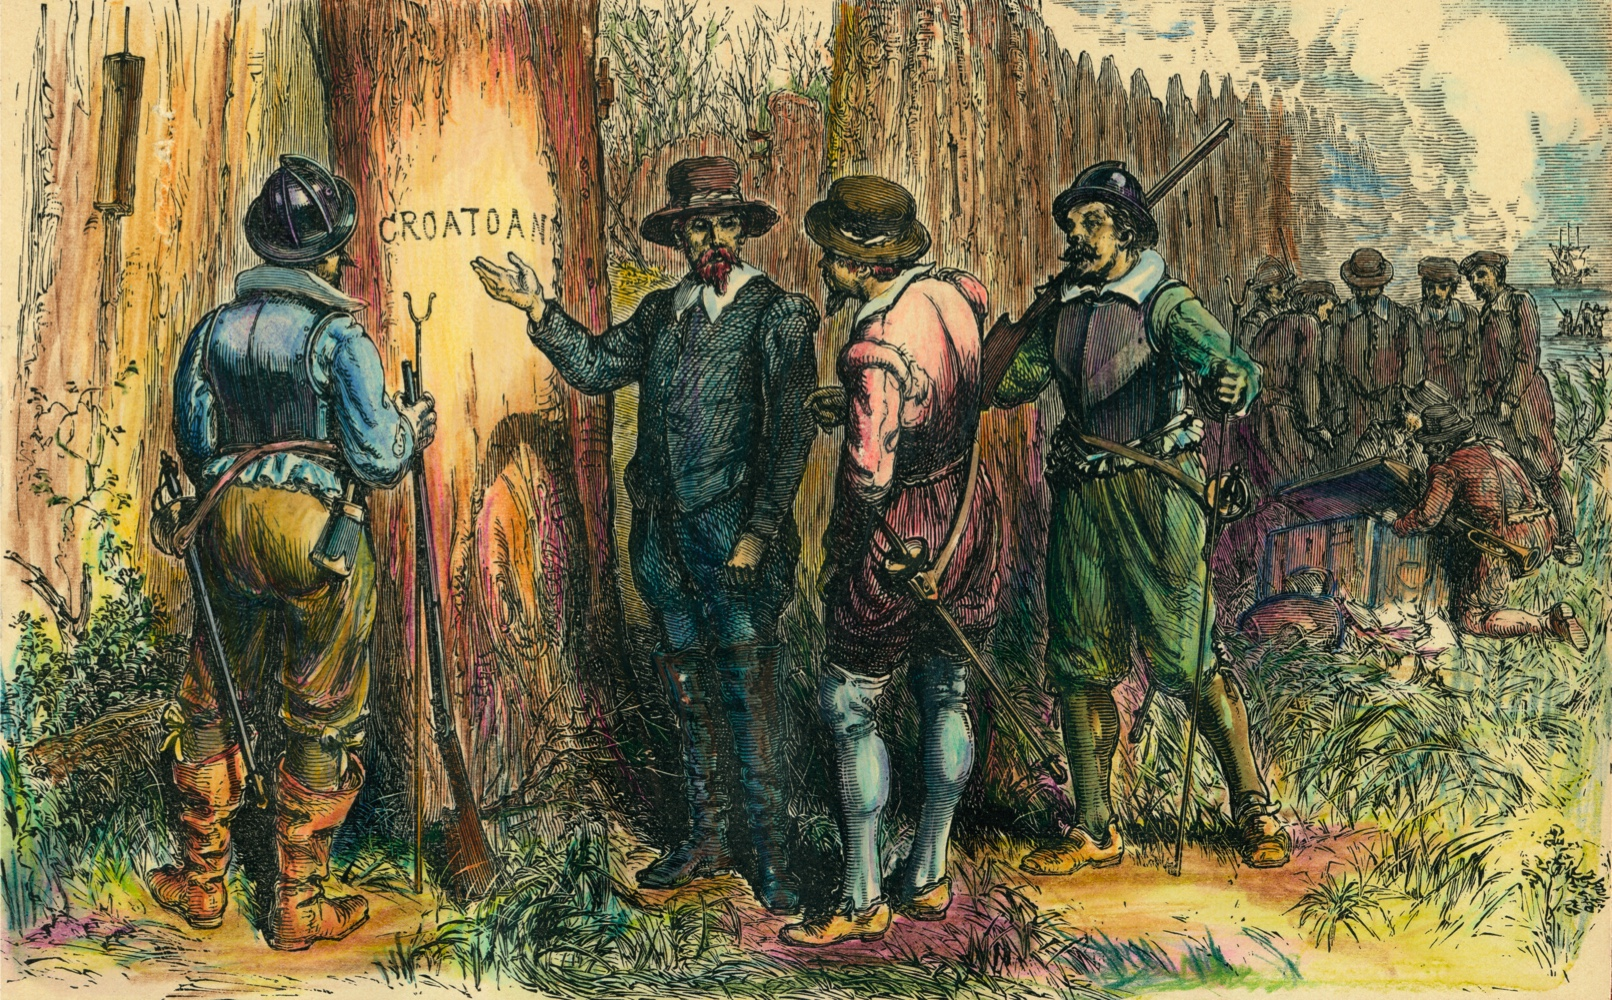 John White and others are shown on Roanoke Island, North Carolina, 1590, having returned to the English colony in America with relief supplies. White found no trace of the colonists. The picture depicts White pointing to the word Croatoan that he found carved into a tree trunk. The colony, founded in 1587, is often called the Lost Colony.